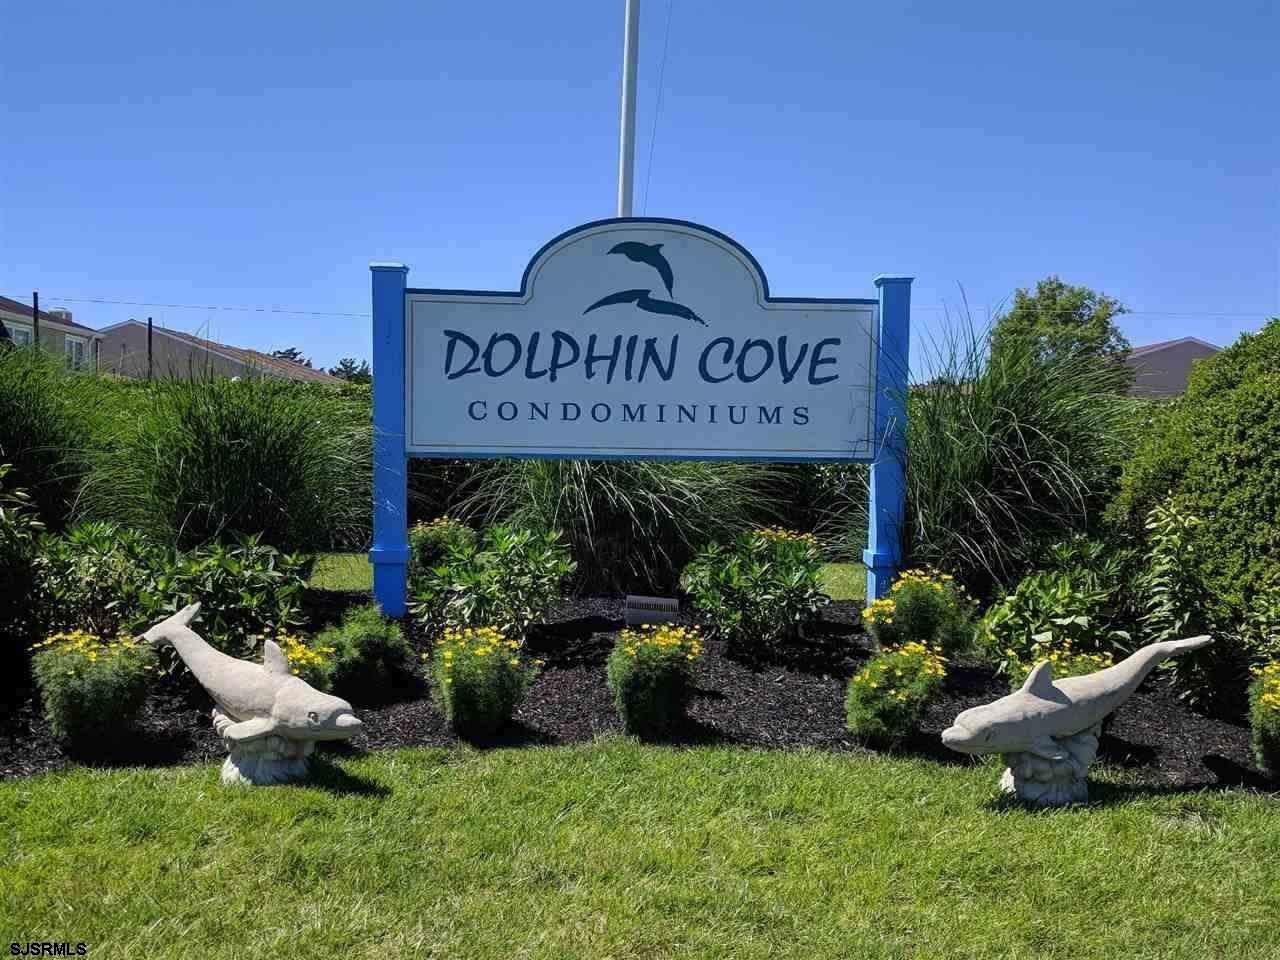 Dolphin Cove is located at the South end of Brigantine. This is a low cost condominium complex. Many